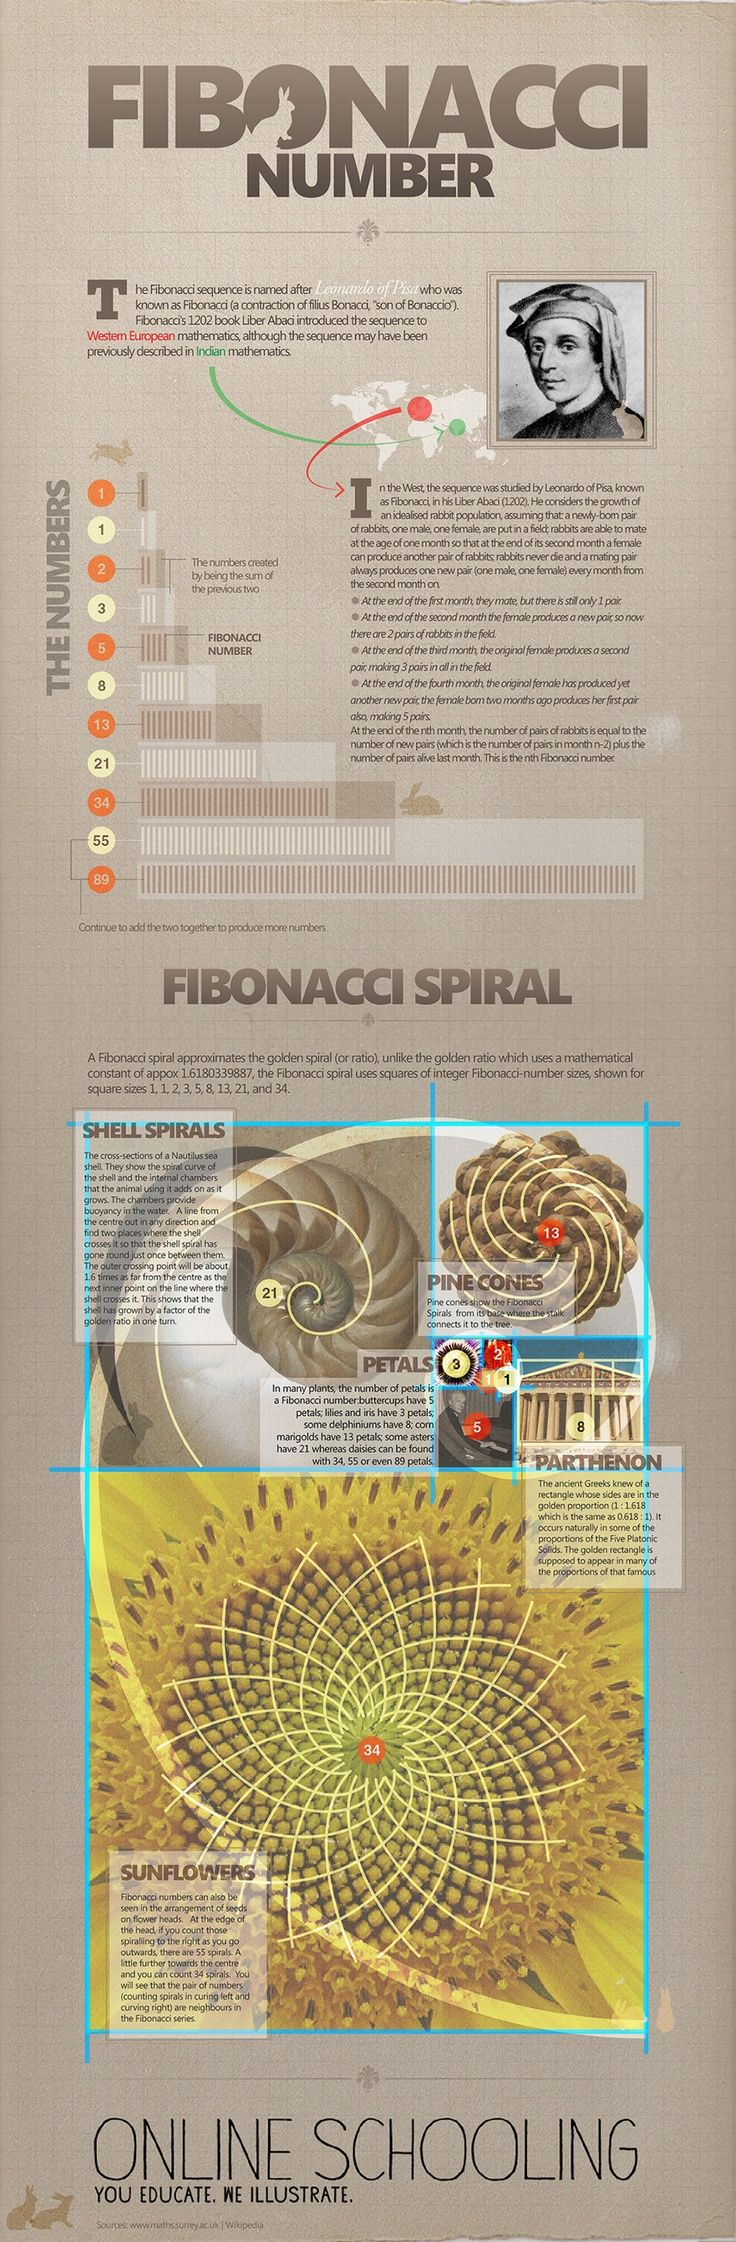 Fibonacci Spiral in nature and architecture